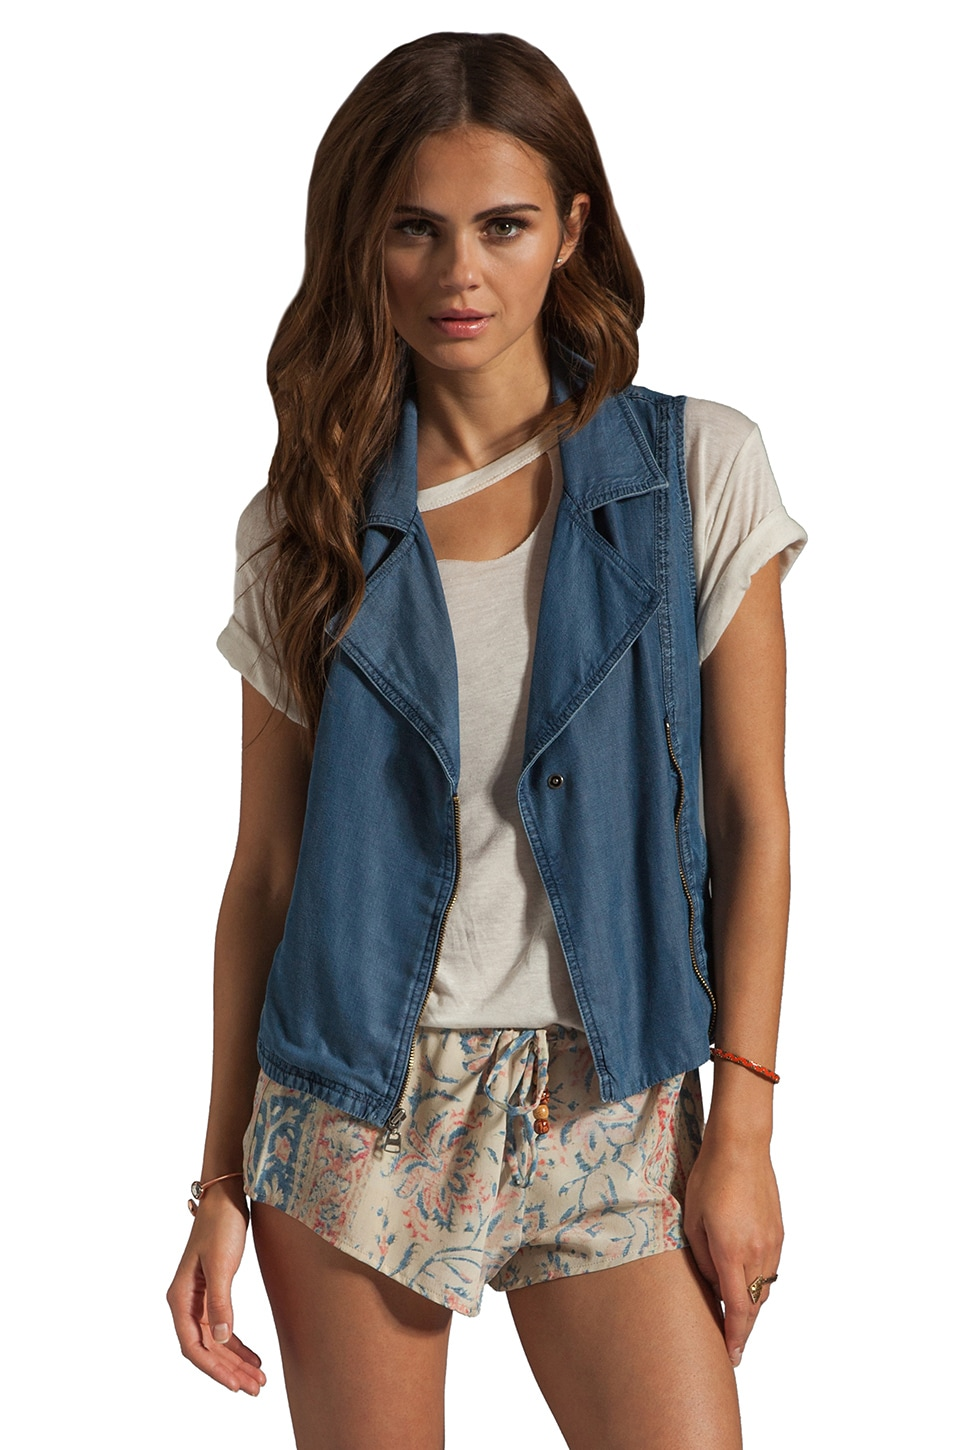 Splendid Indigo Vest in Chambray